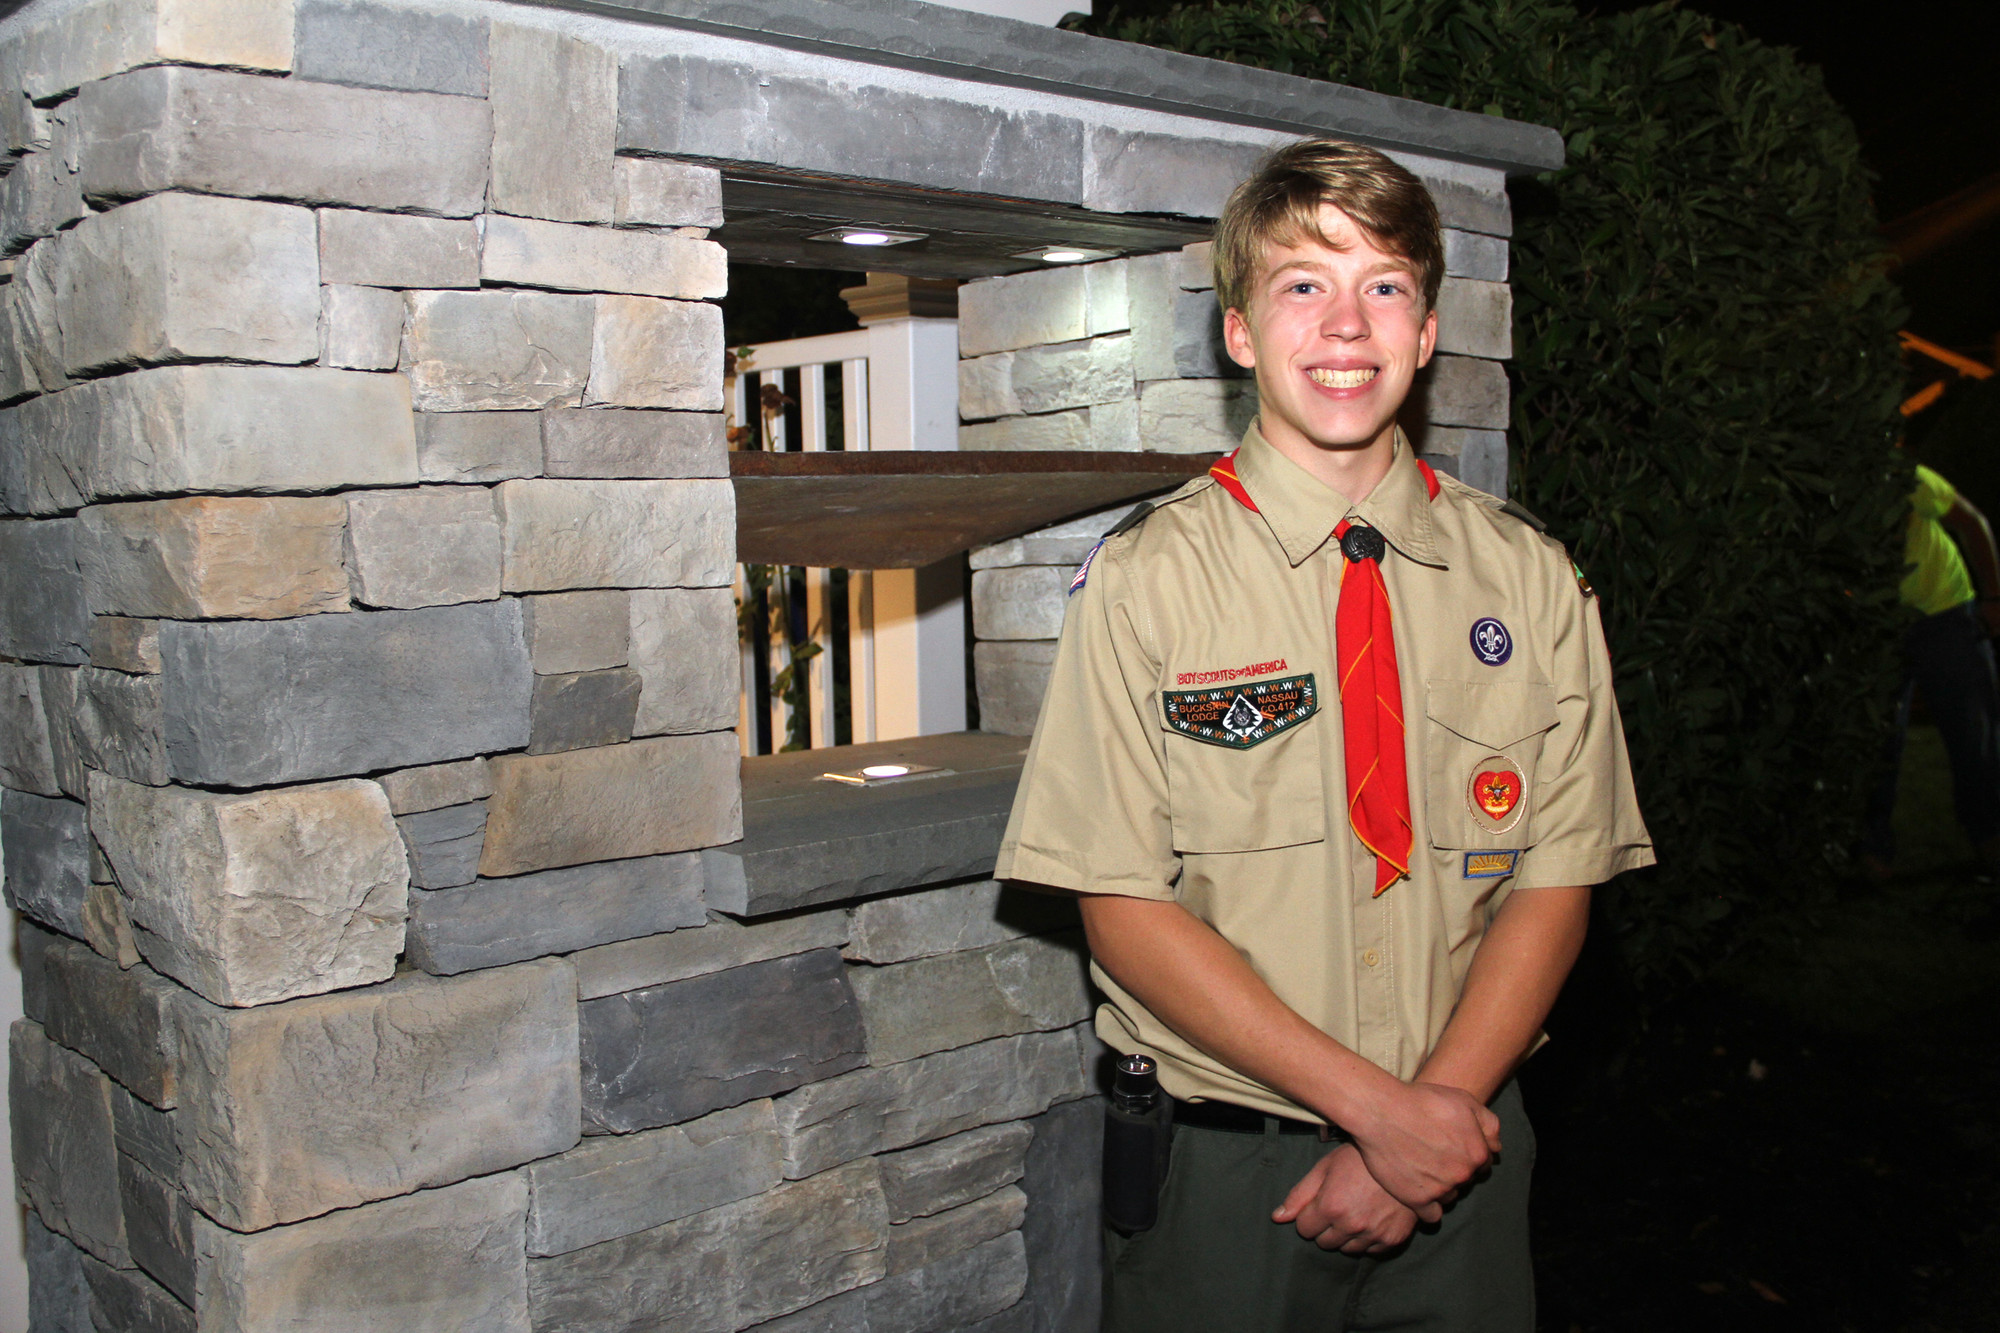 Troop 24 Boy Scout Nicholas St. John unveiled his Eagle Scout project before the memorial service.